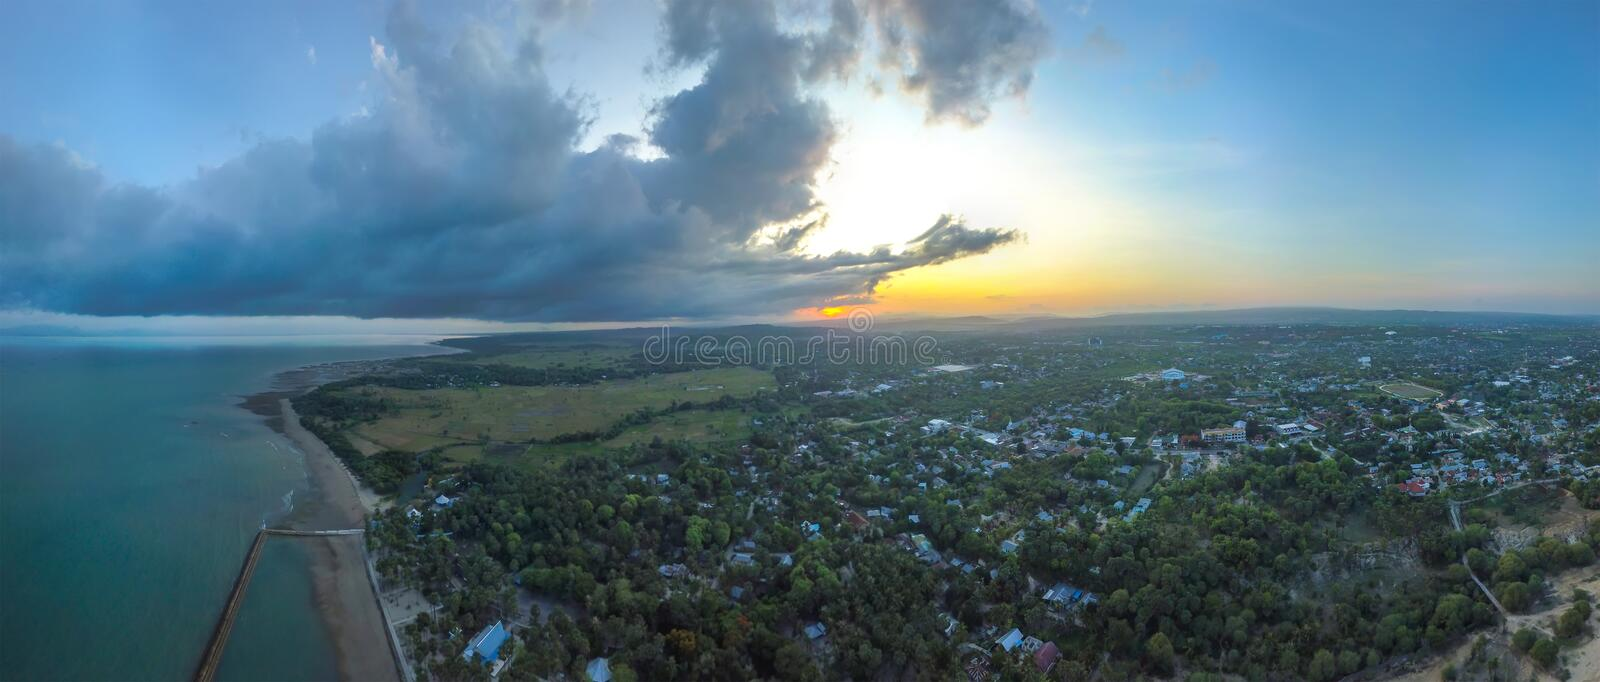 Panoramic Aerial view of Kupang, Indonesia. Kupang is a part of the Timor-Leste Indonesia Australia growth Triangle free trade Zone royalty free stock photography